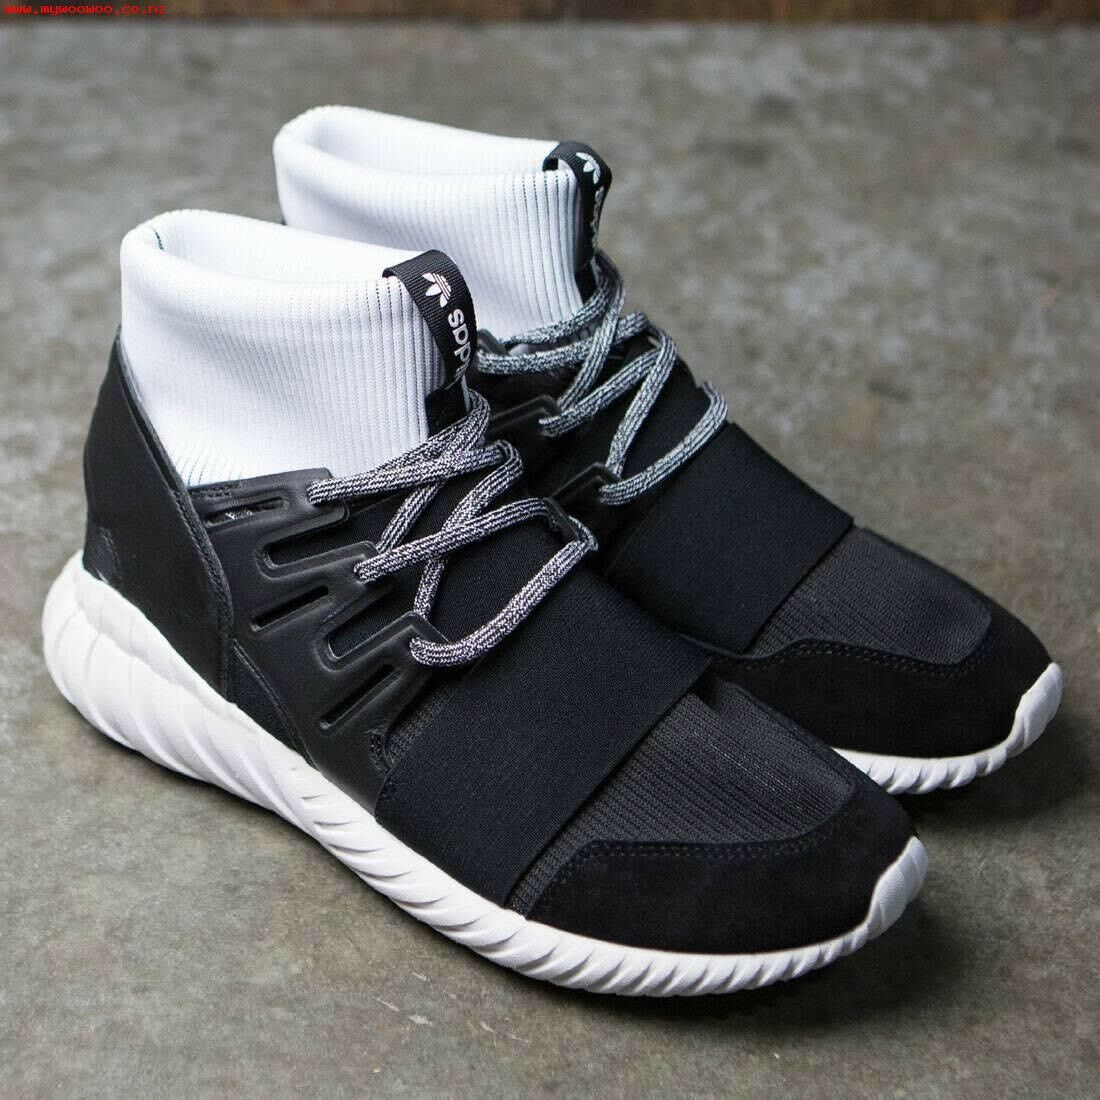 Men's Adidas Tubular Doom Size US Size 10 Boost Nmd Pirate Black Beluga OG Kith